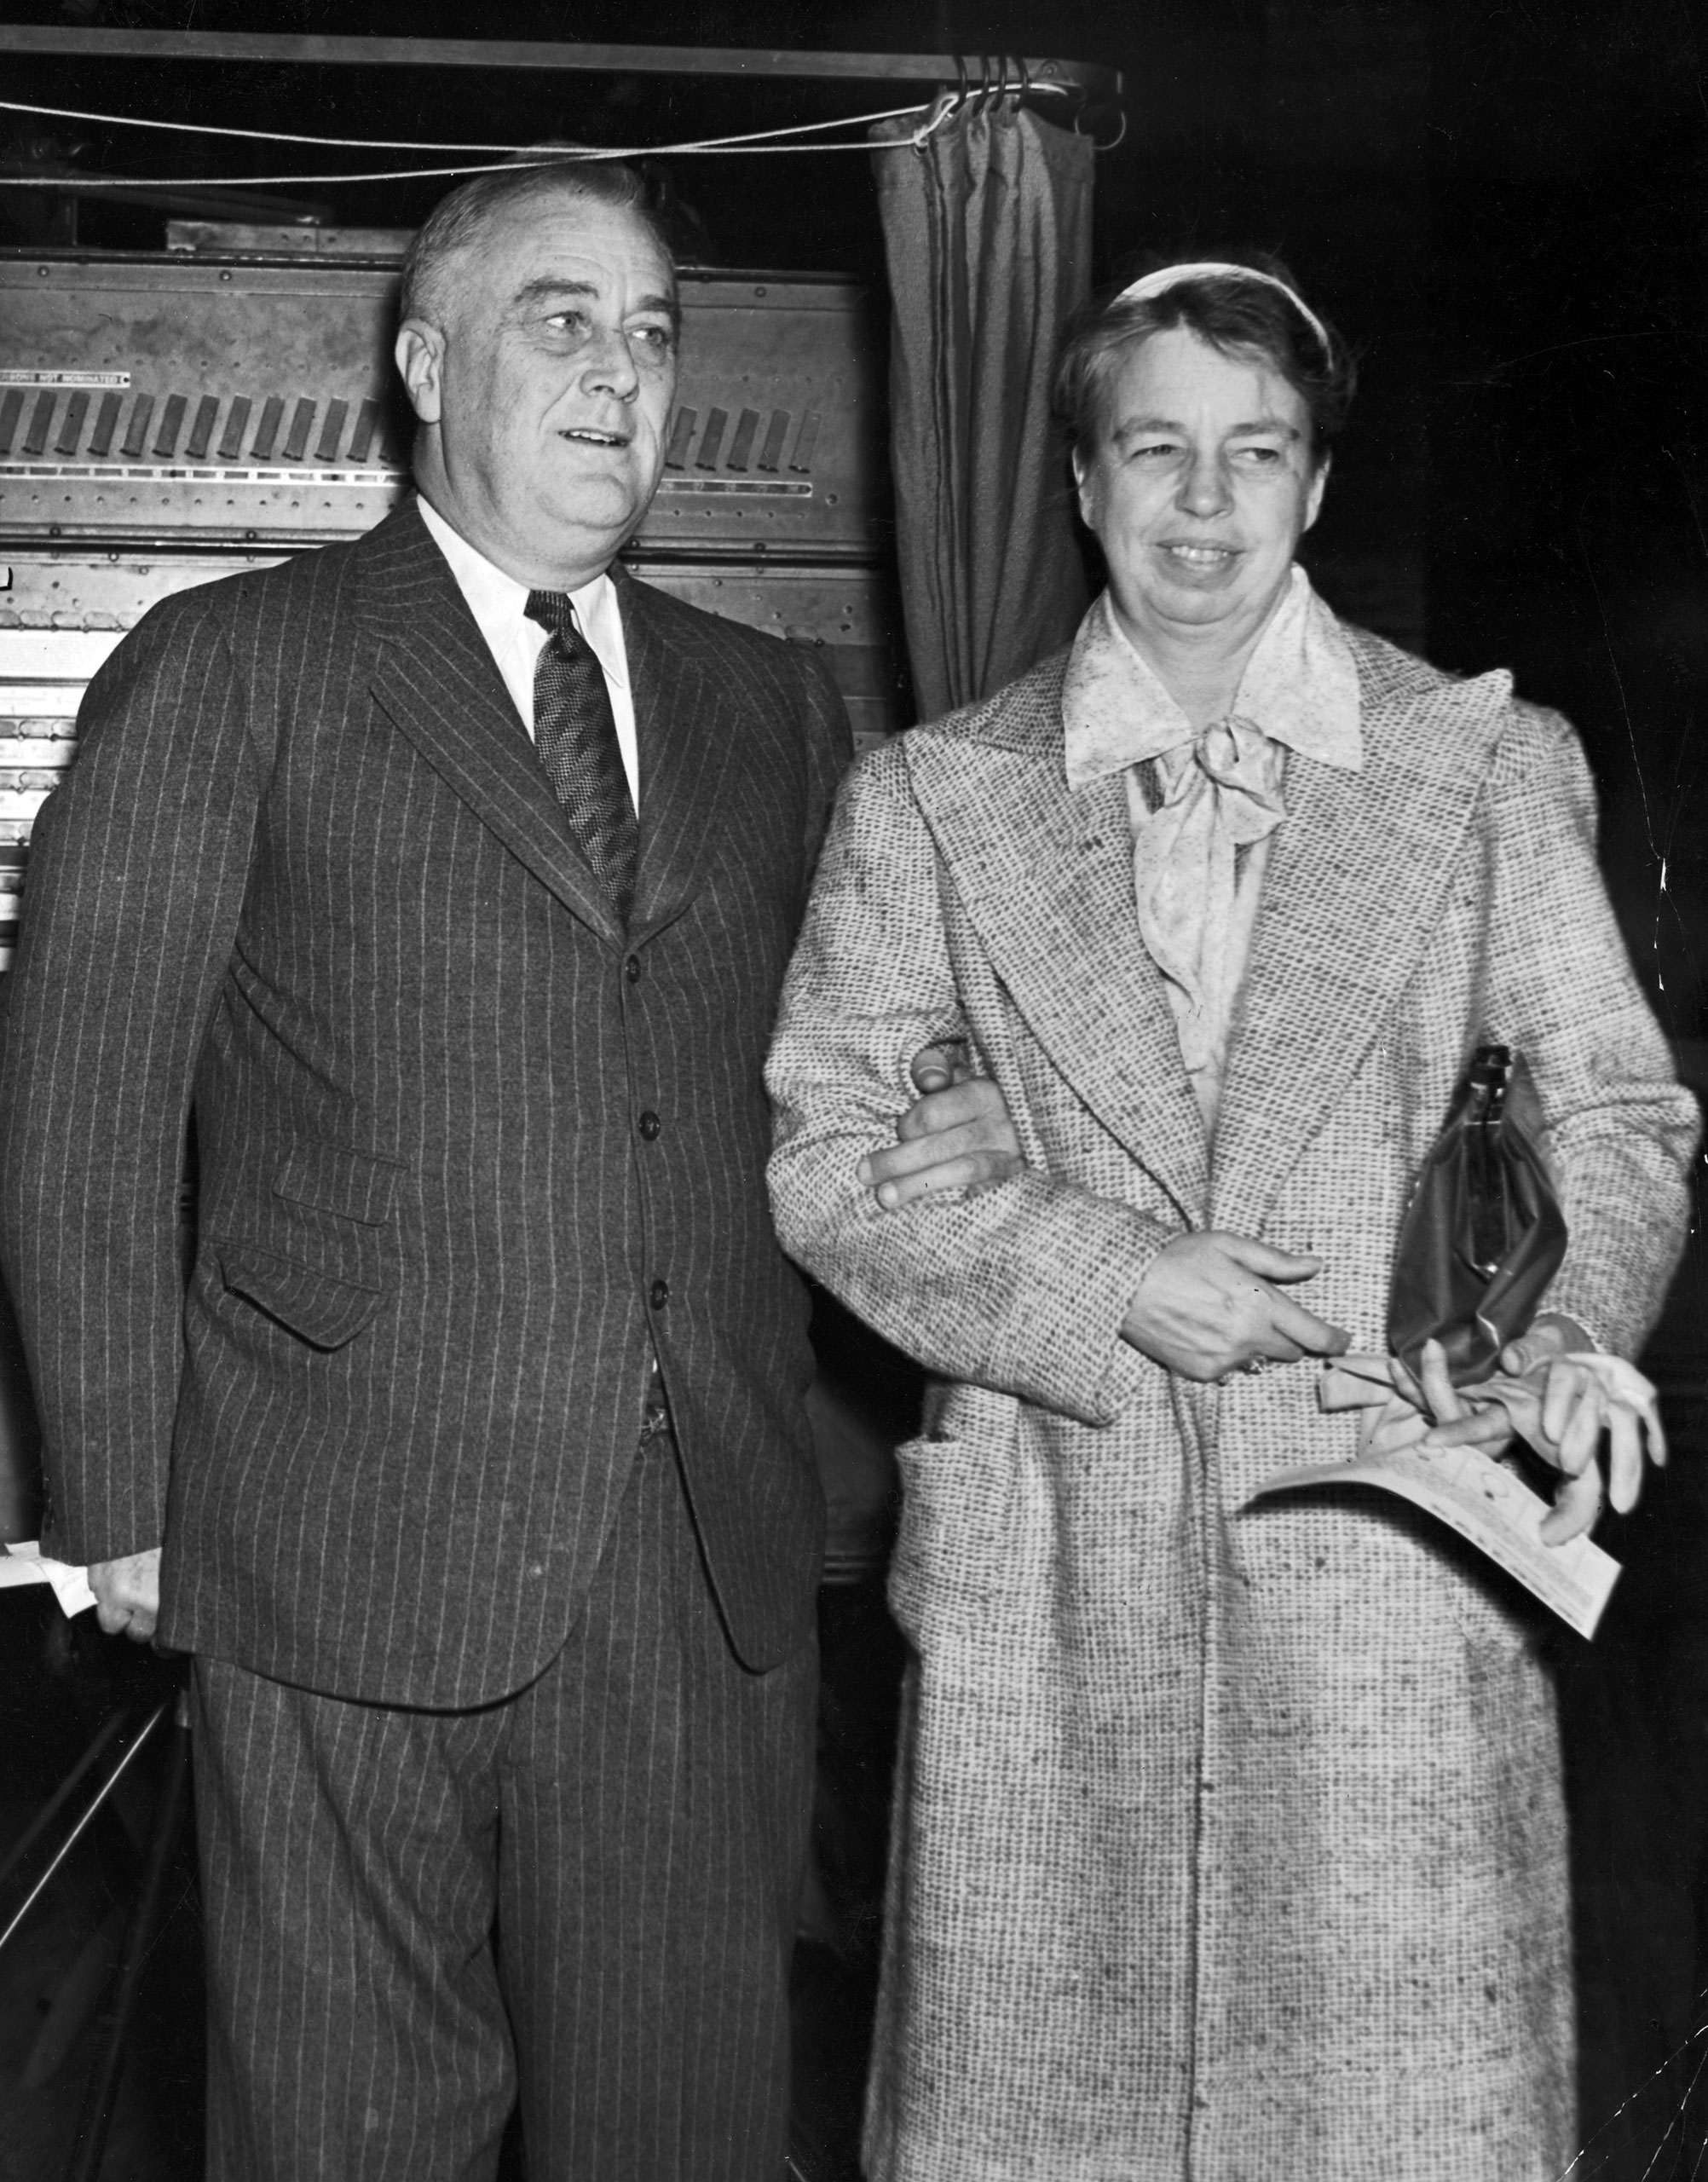 President Franklin D. Roosevelt with his wife Eleanor voting in a Hyde Park polling station, 1937.